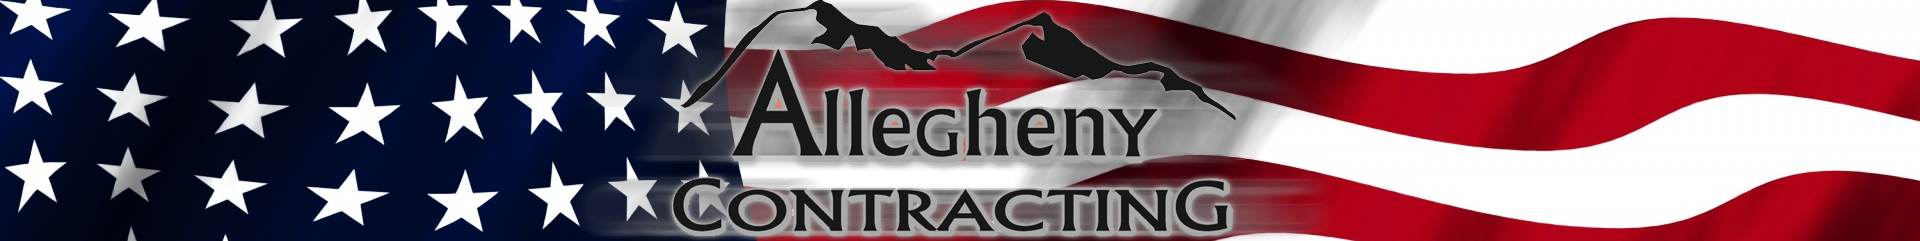 Allegheny Contracting